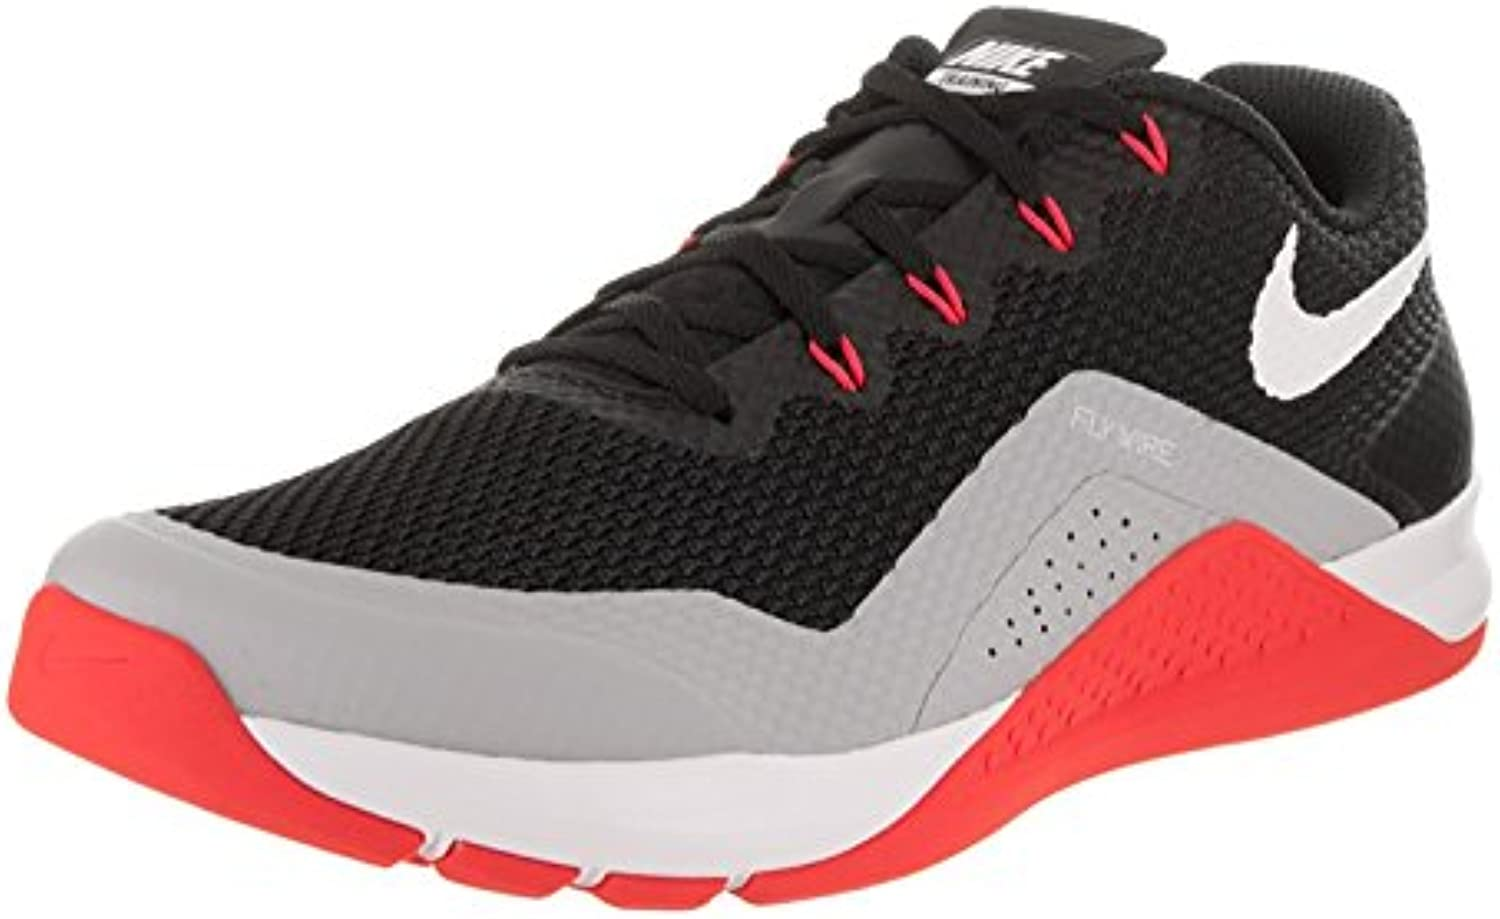 Nike Repper DSX Black/White/Wolf Grey/Bright Crimson Men's Cross Training Shoes, Black/White Wolf Grey, 42.5 D...